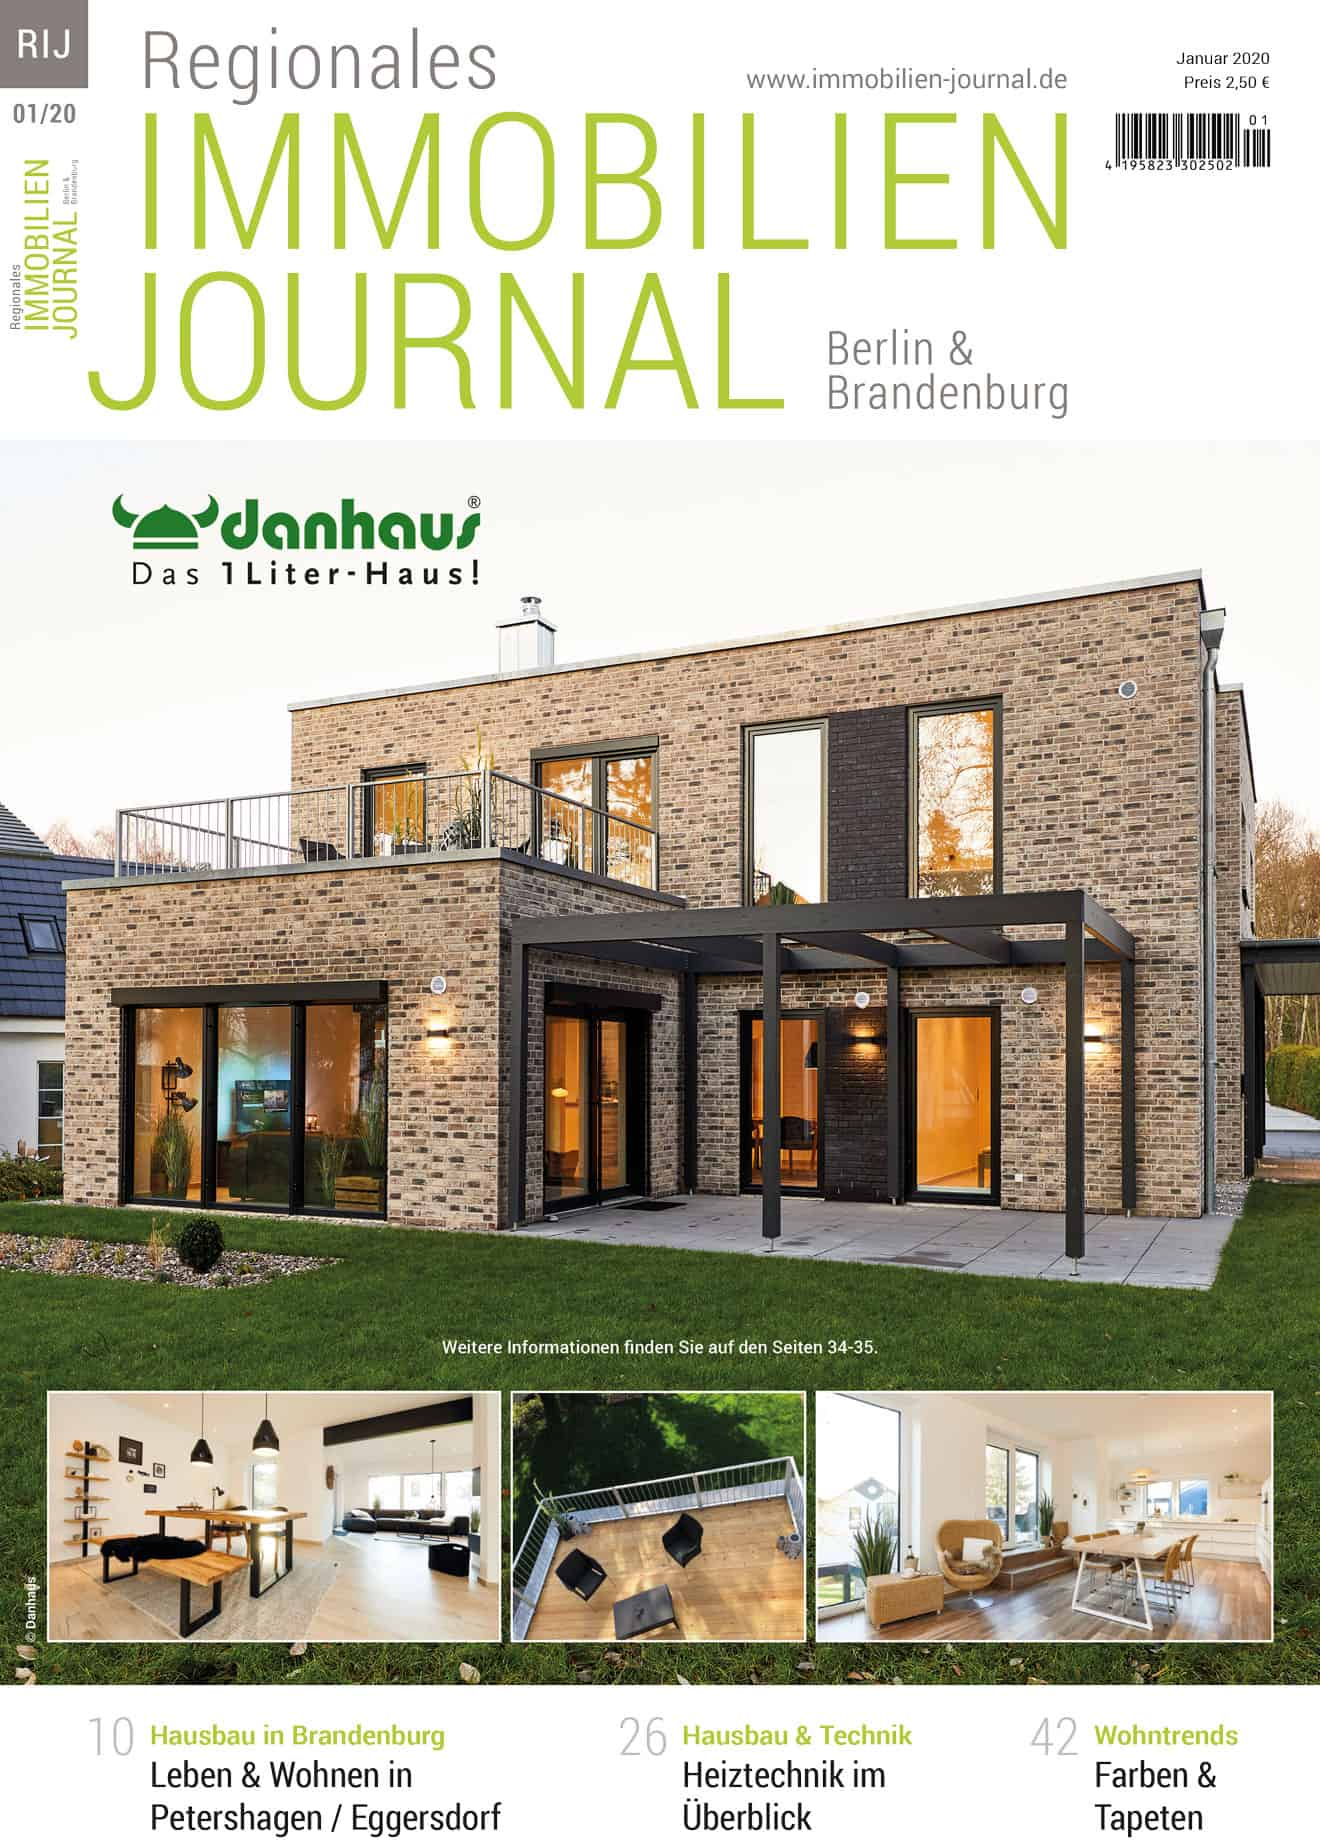 Regionales Immobilien Journal Berlin & Brandenburg 01-2020